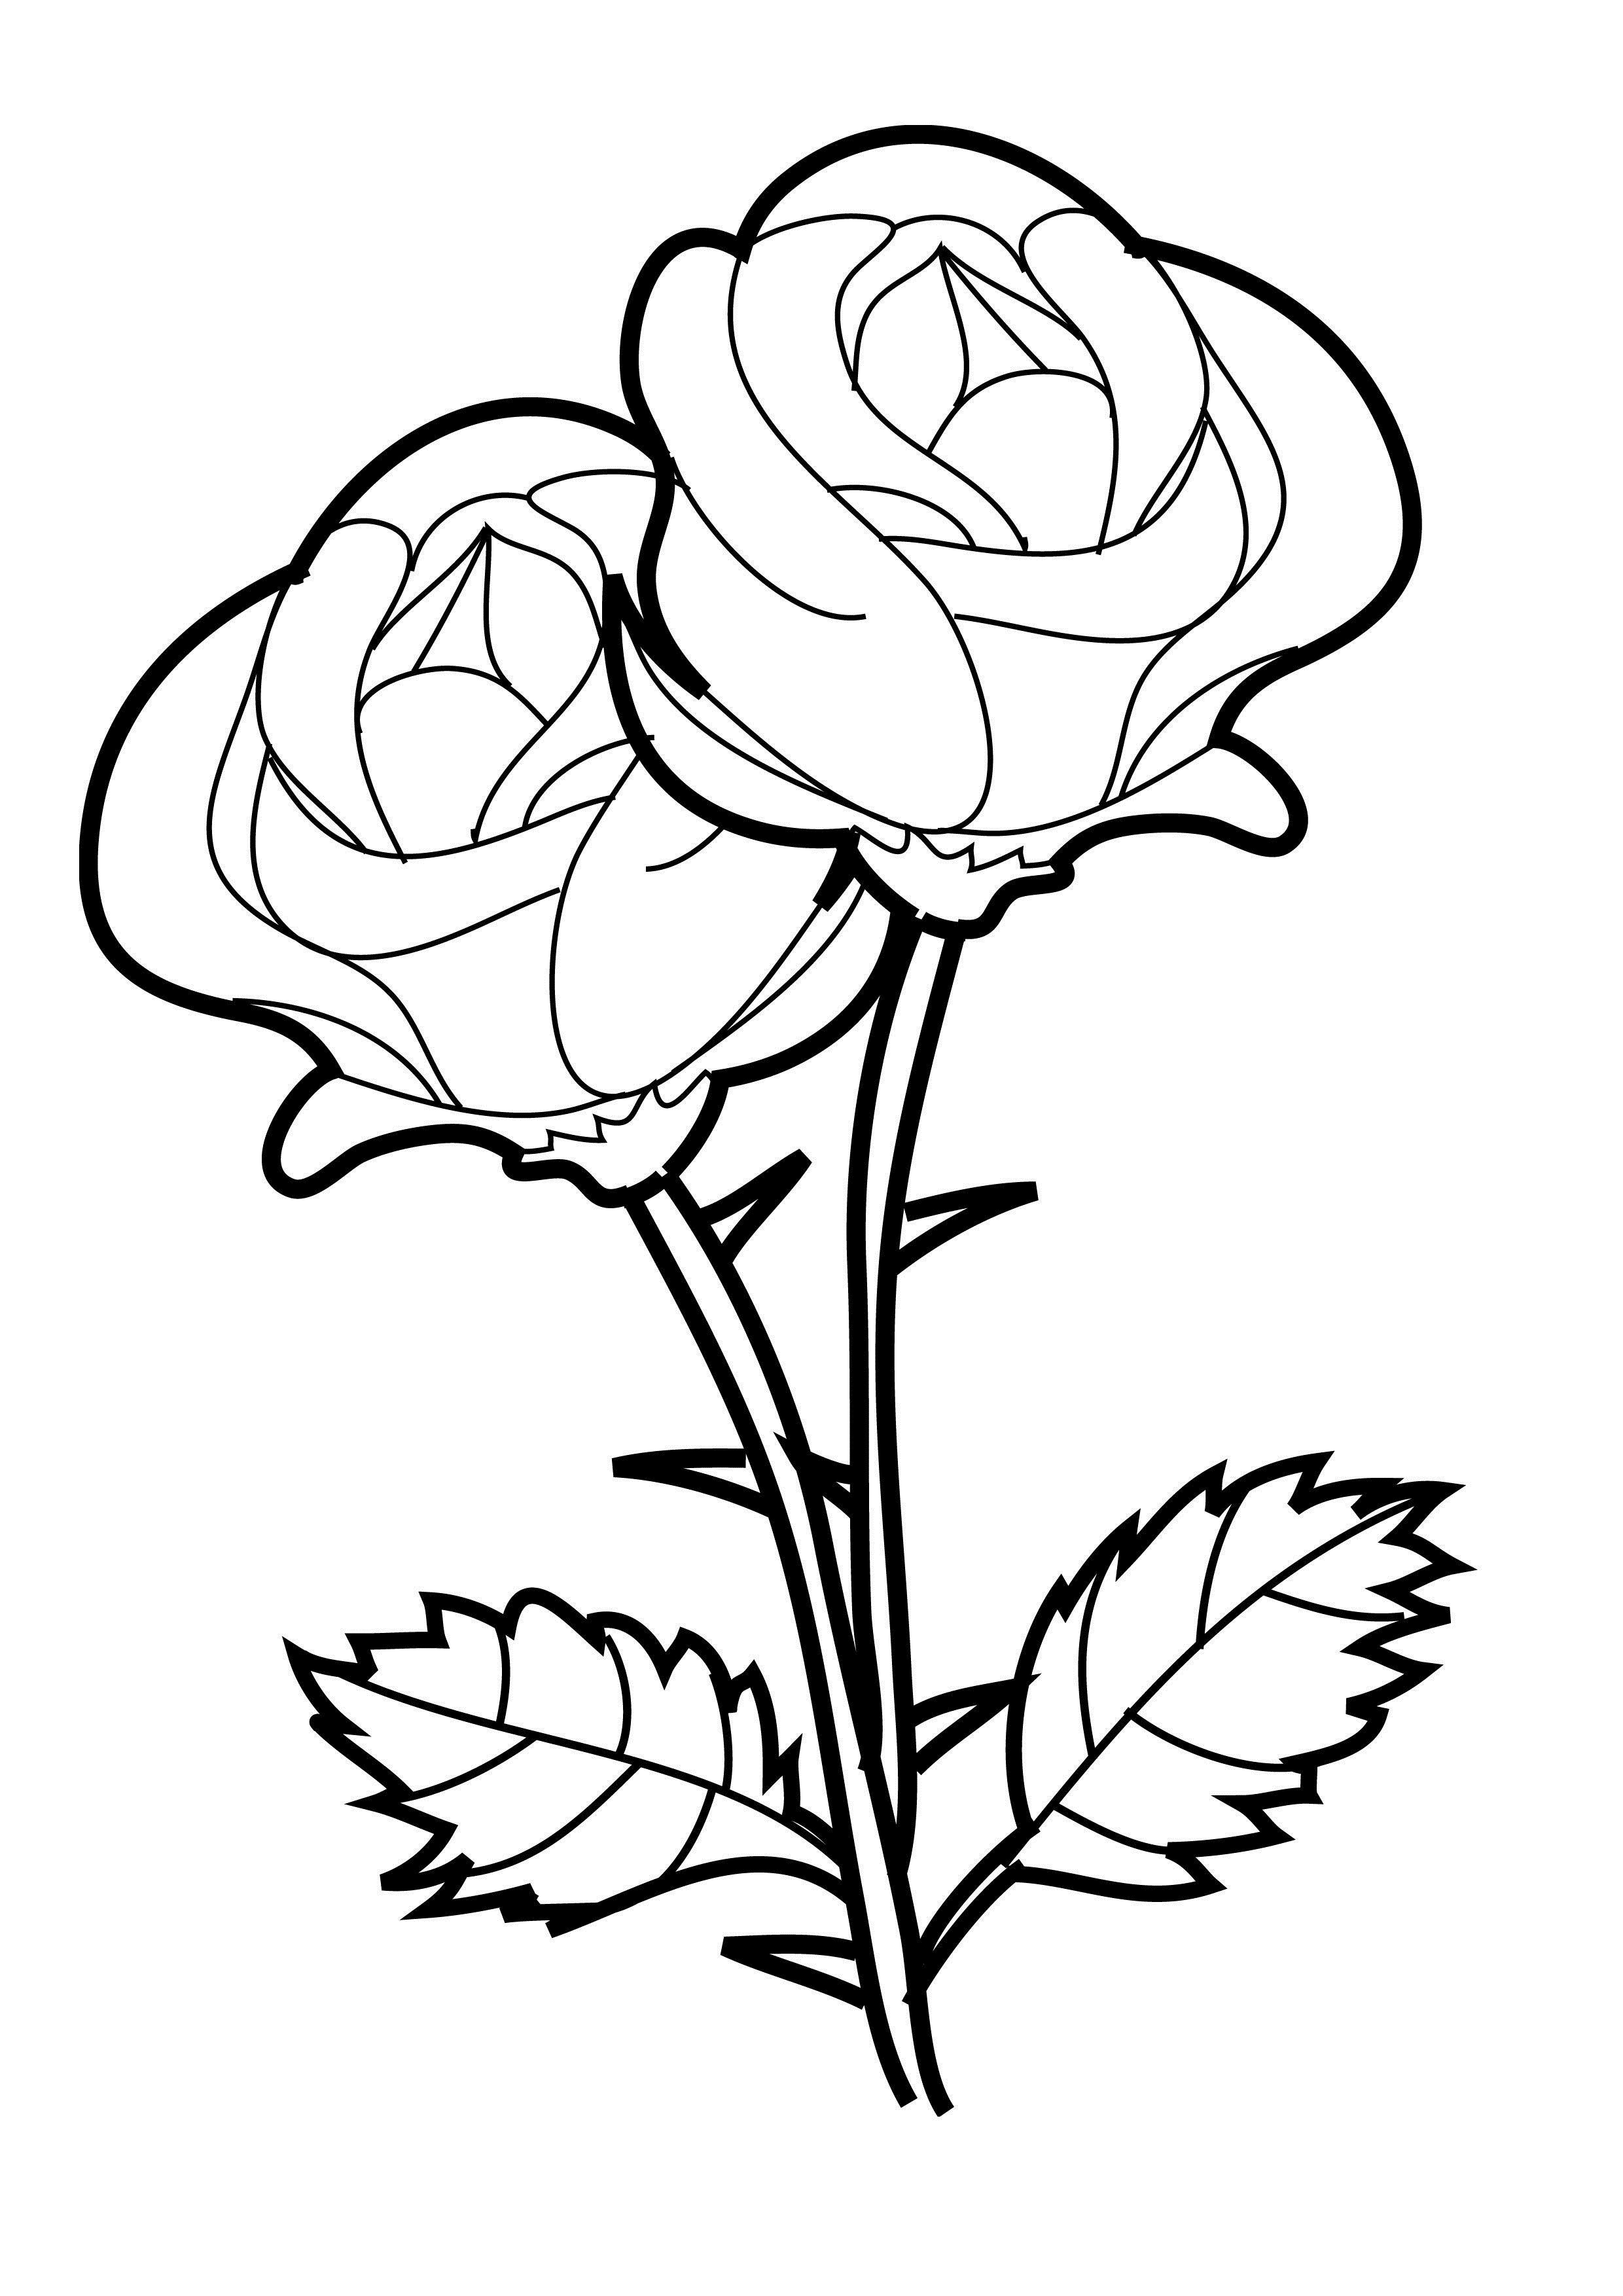 2480x3508 Nice Rose Flower Coloring Pages For Kids Beautiful Rose Flower